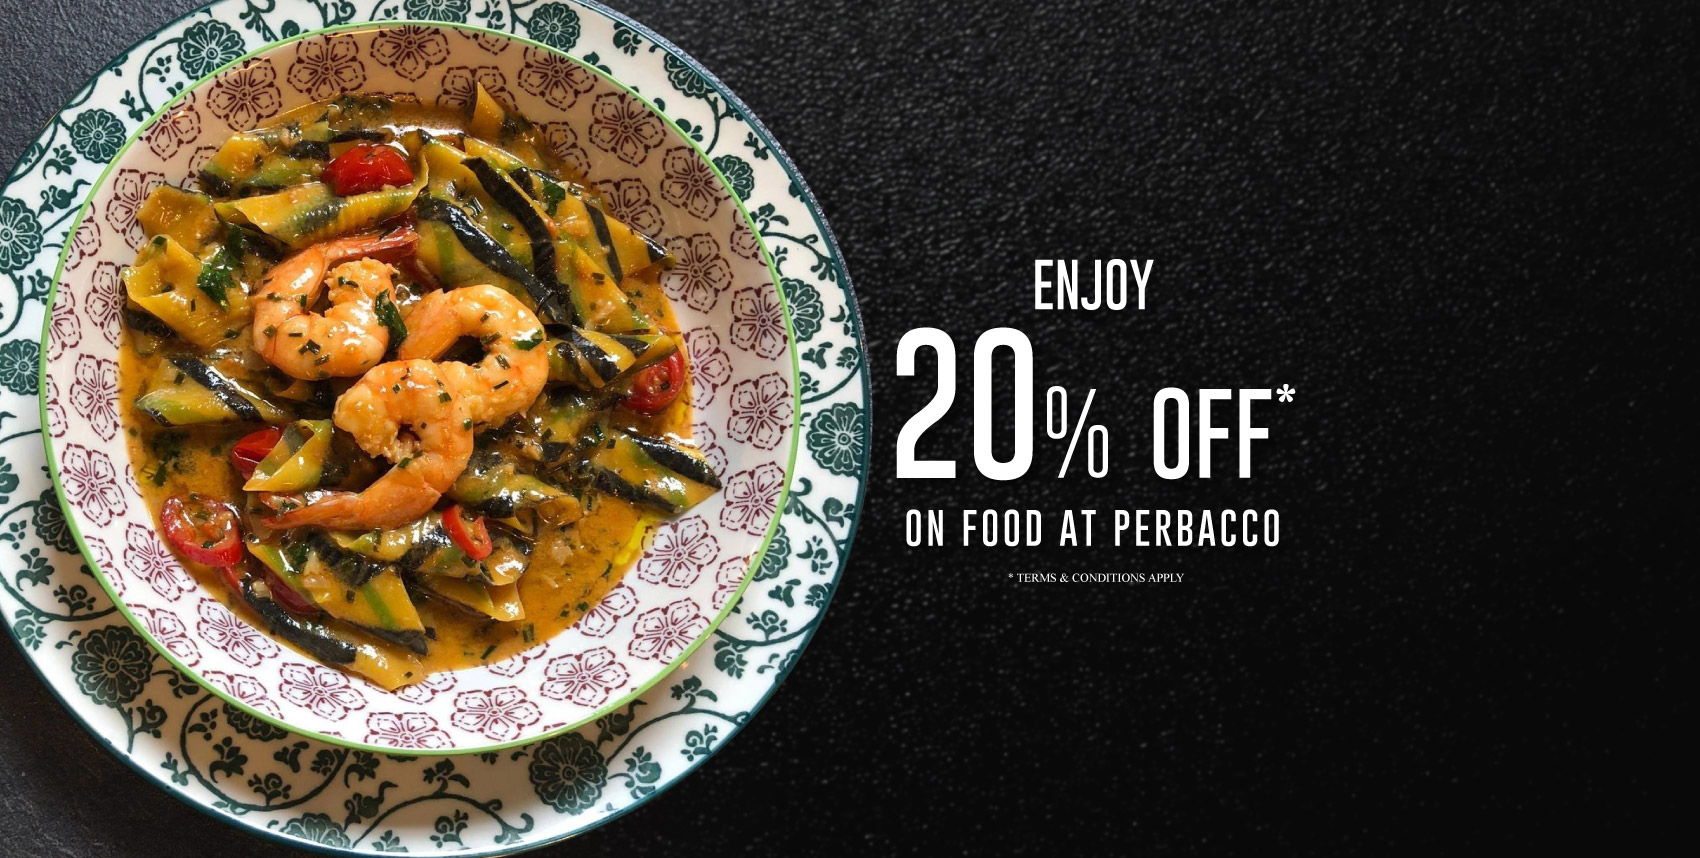 PerBacco London - 20% Off on Food